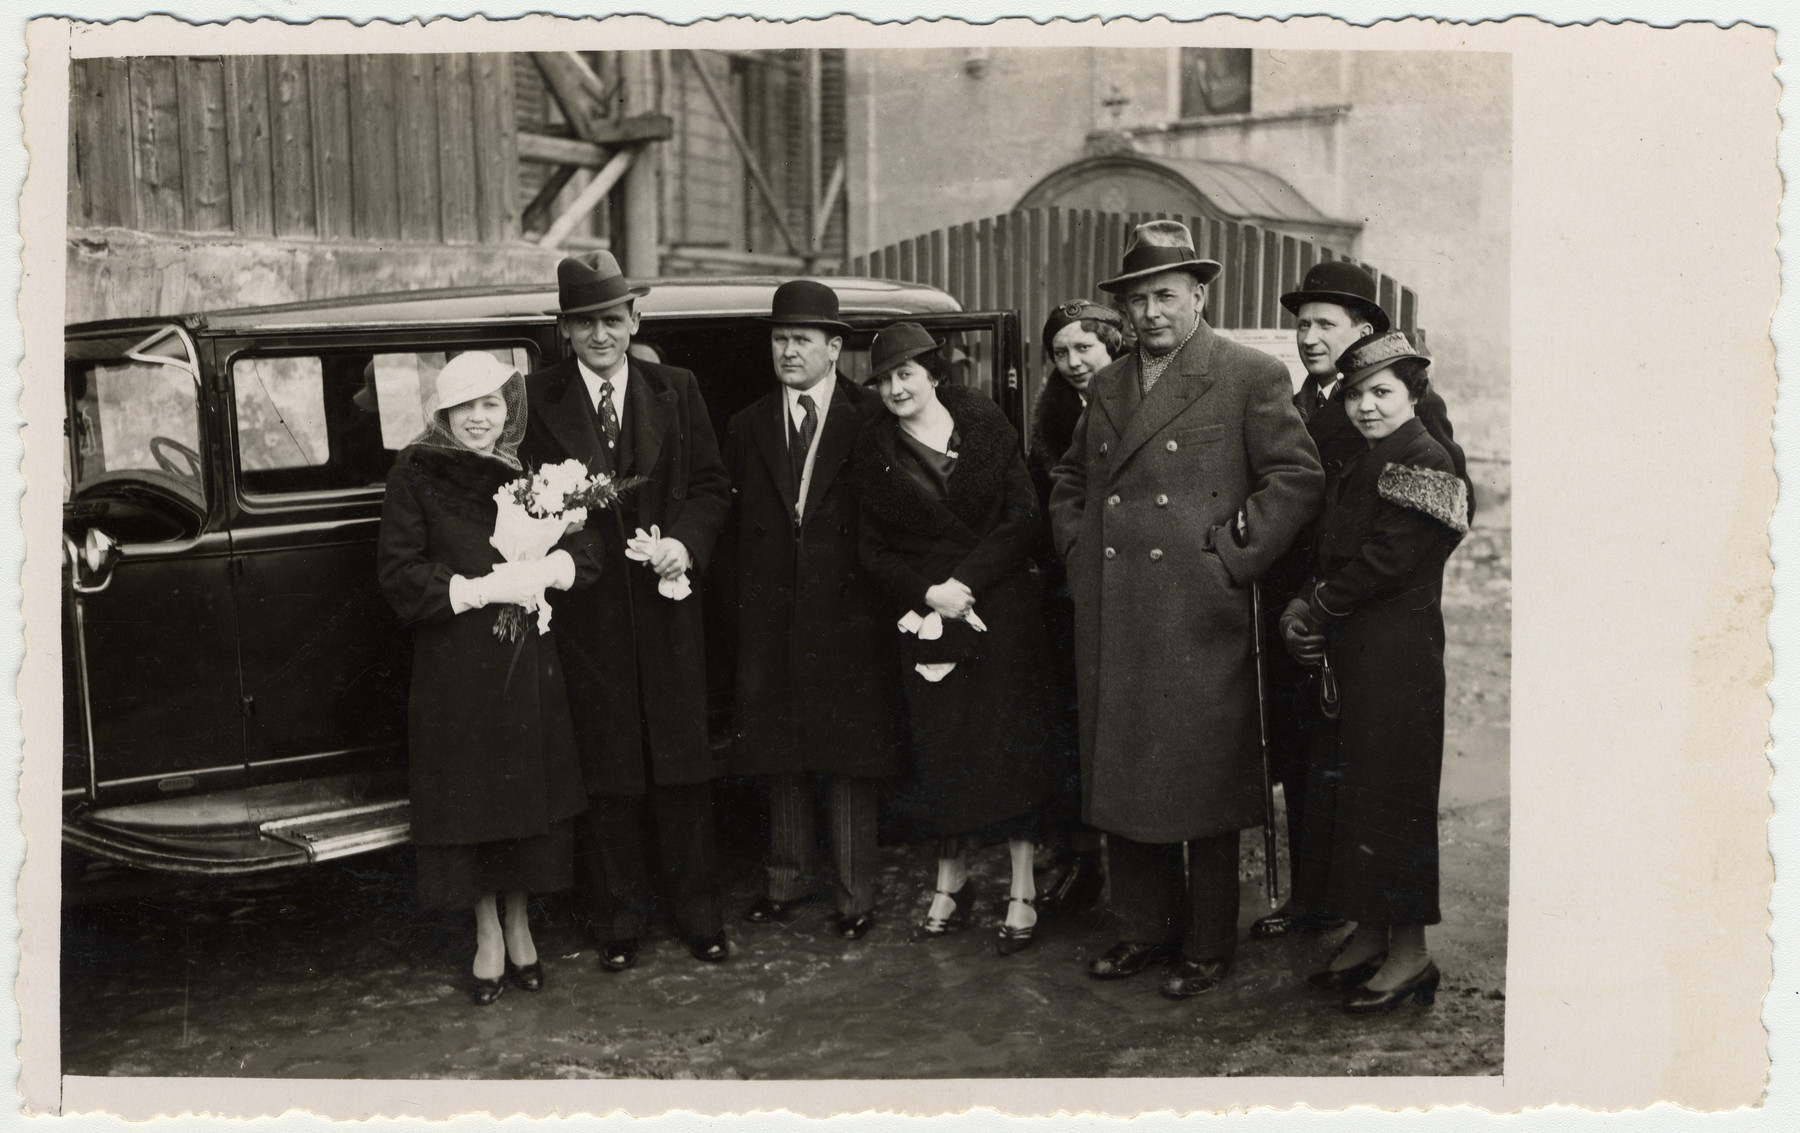 Giustina (Papo) and Jevrem Dragojevic on their wedding day with extended members of the Papo and Dragojevic families.